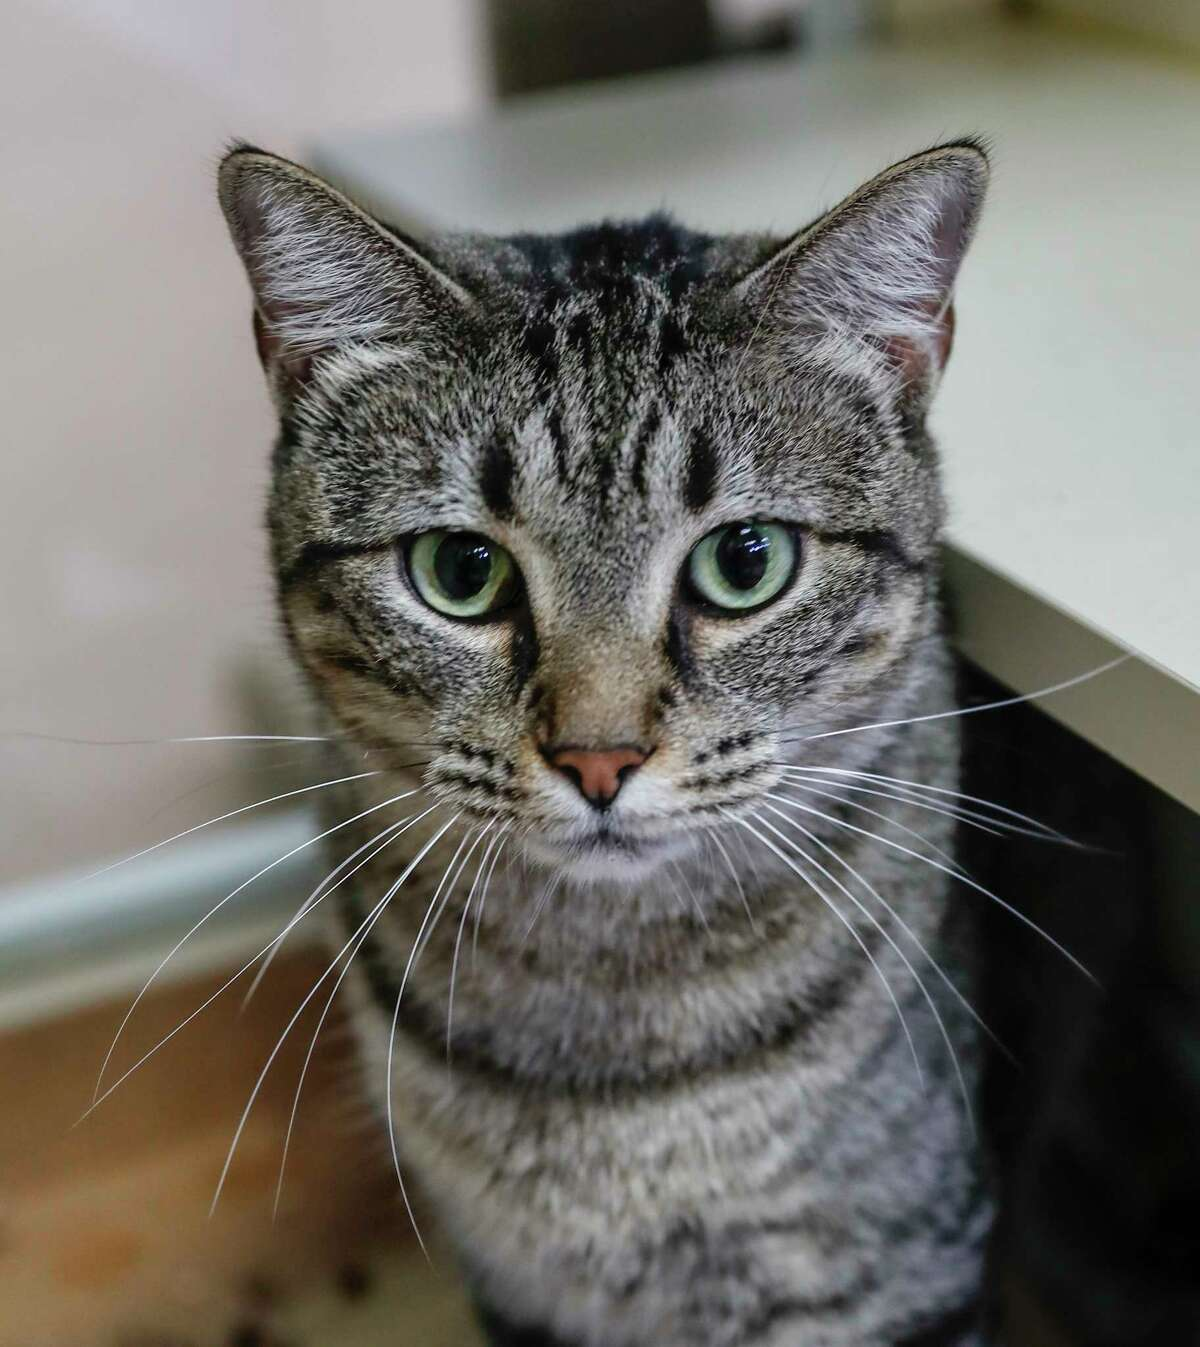 Rosie (ID: 9628) is an adult, female, brown tabby Domestic Short hair cat available for adoption from the Alvin Animal Adoption Center. Photographed, Tuesday, Oct. 1, 2019, in Alvin. Rosie is a striking girl with beautiful green eyes.